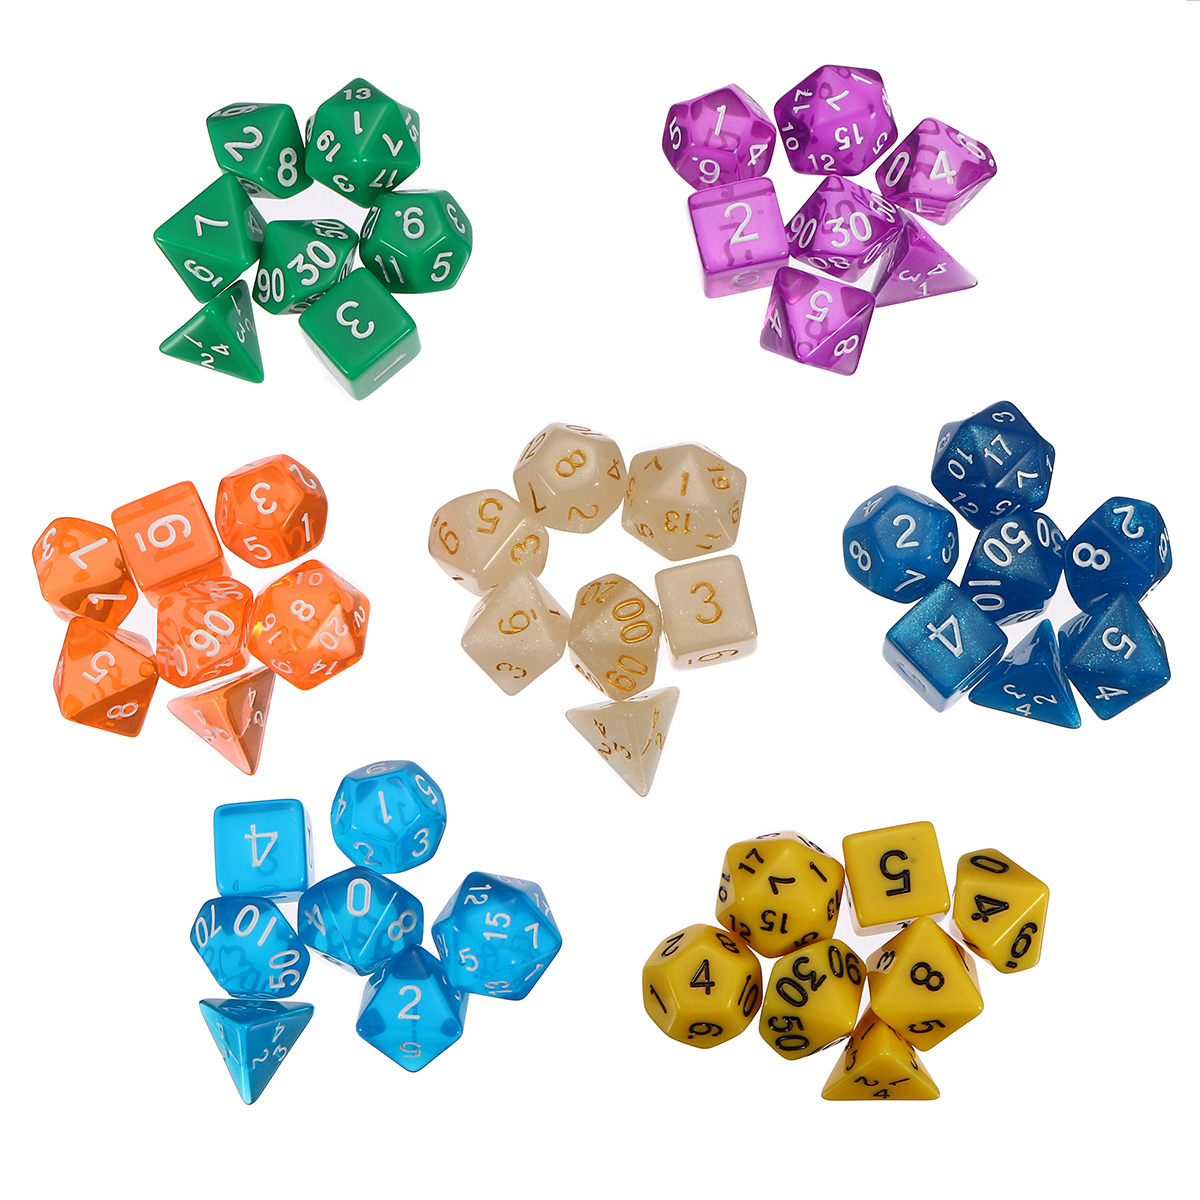 49pcs 7 Colors Multi-sided Game Role Playing Polyhedral